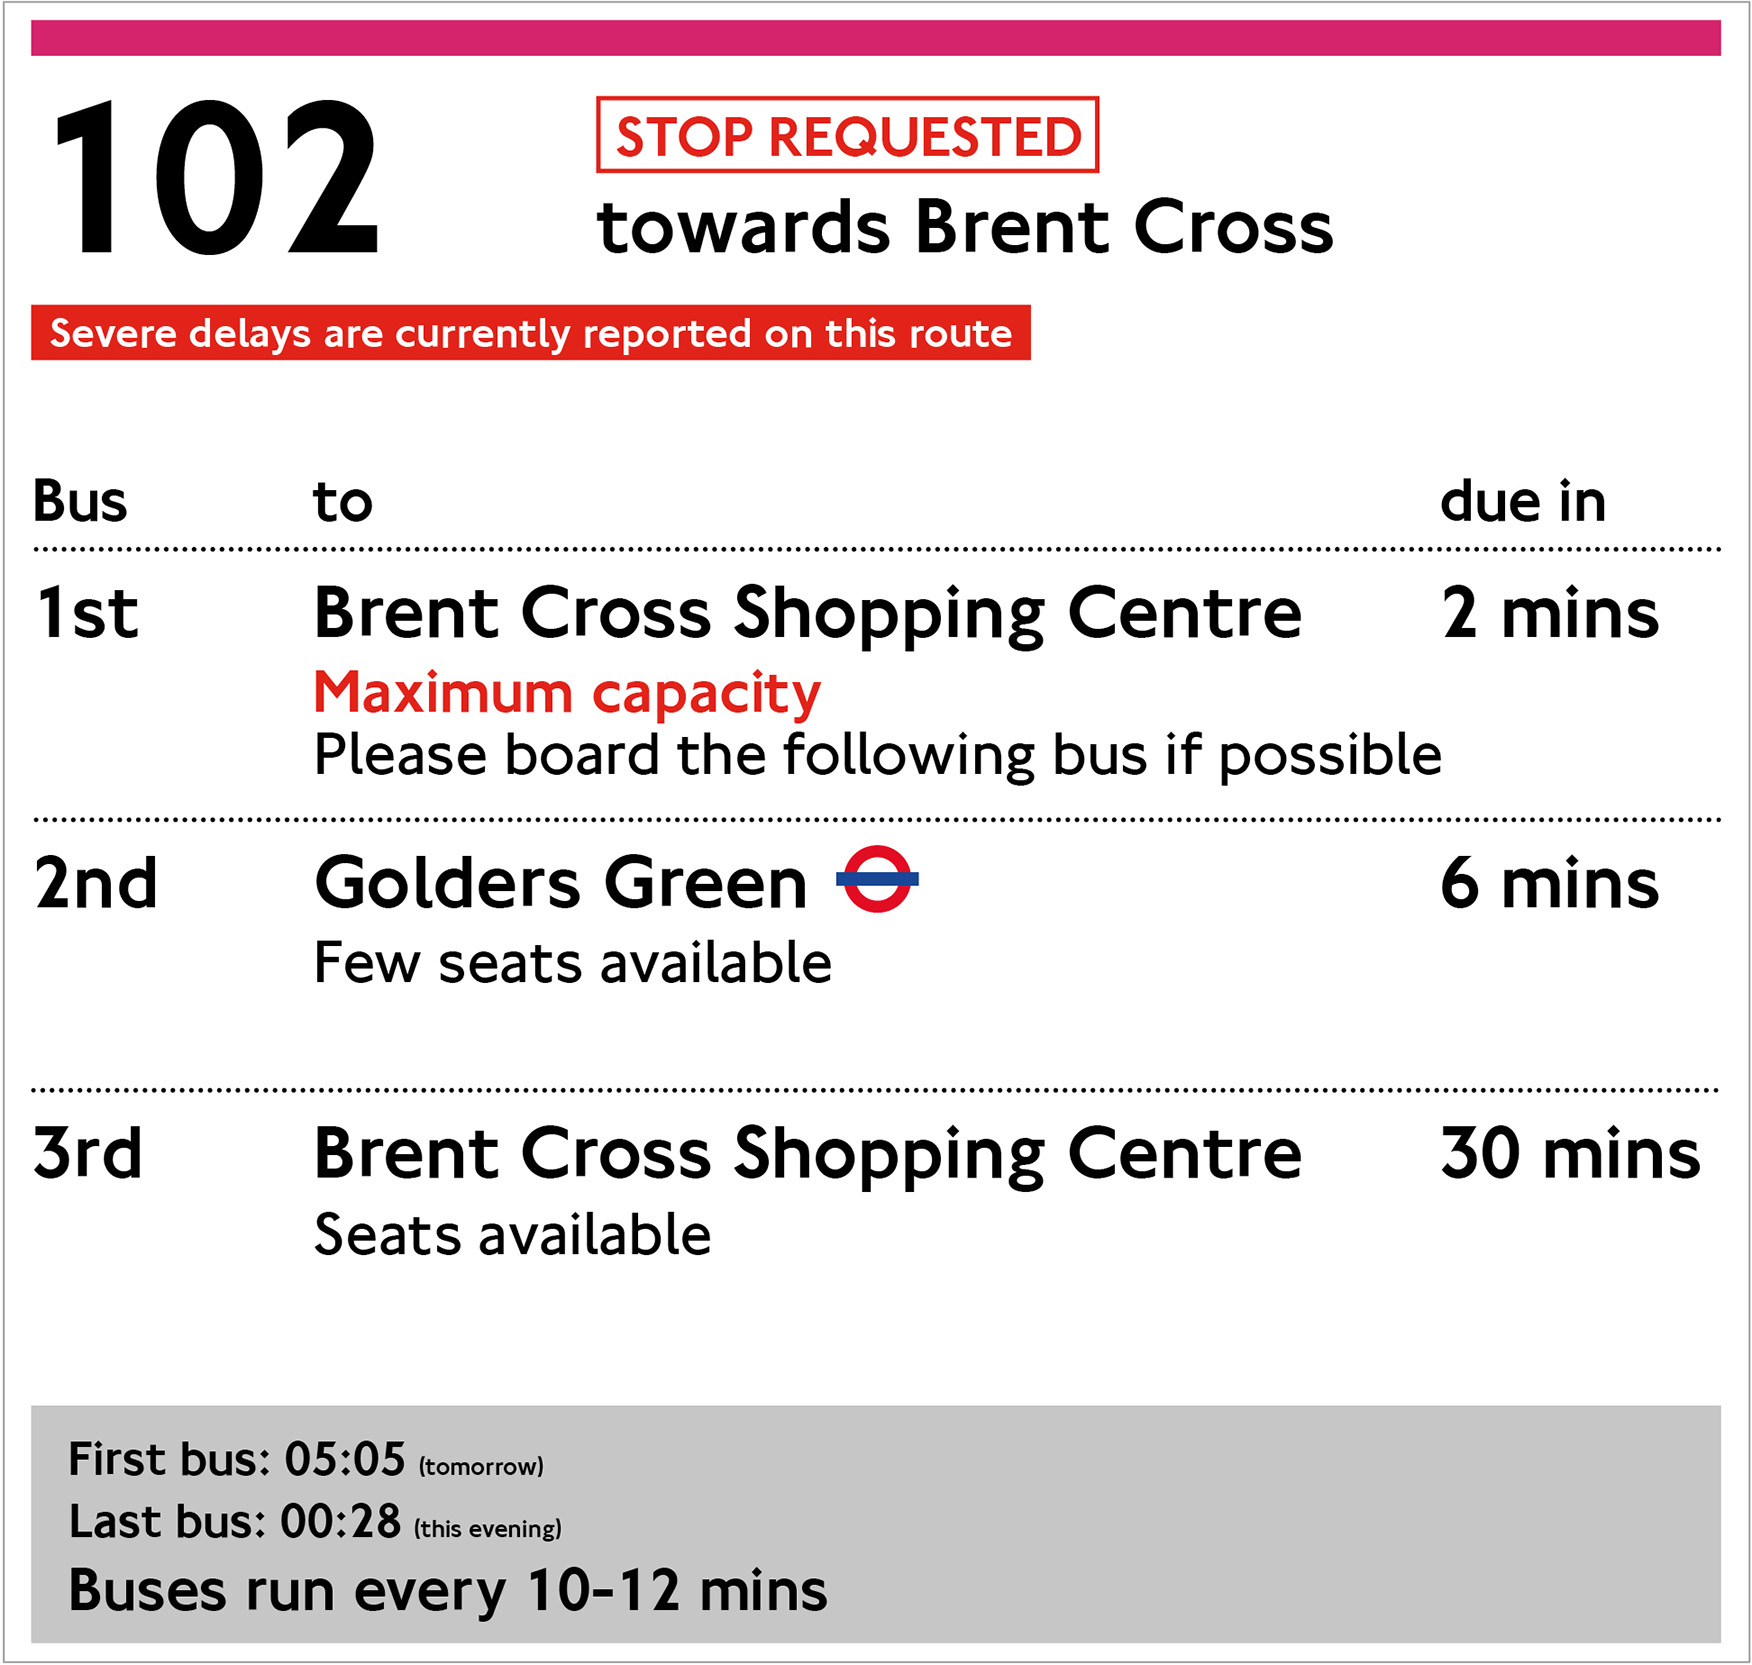 Route-specific timetable with traffic and seating information